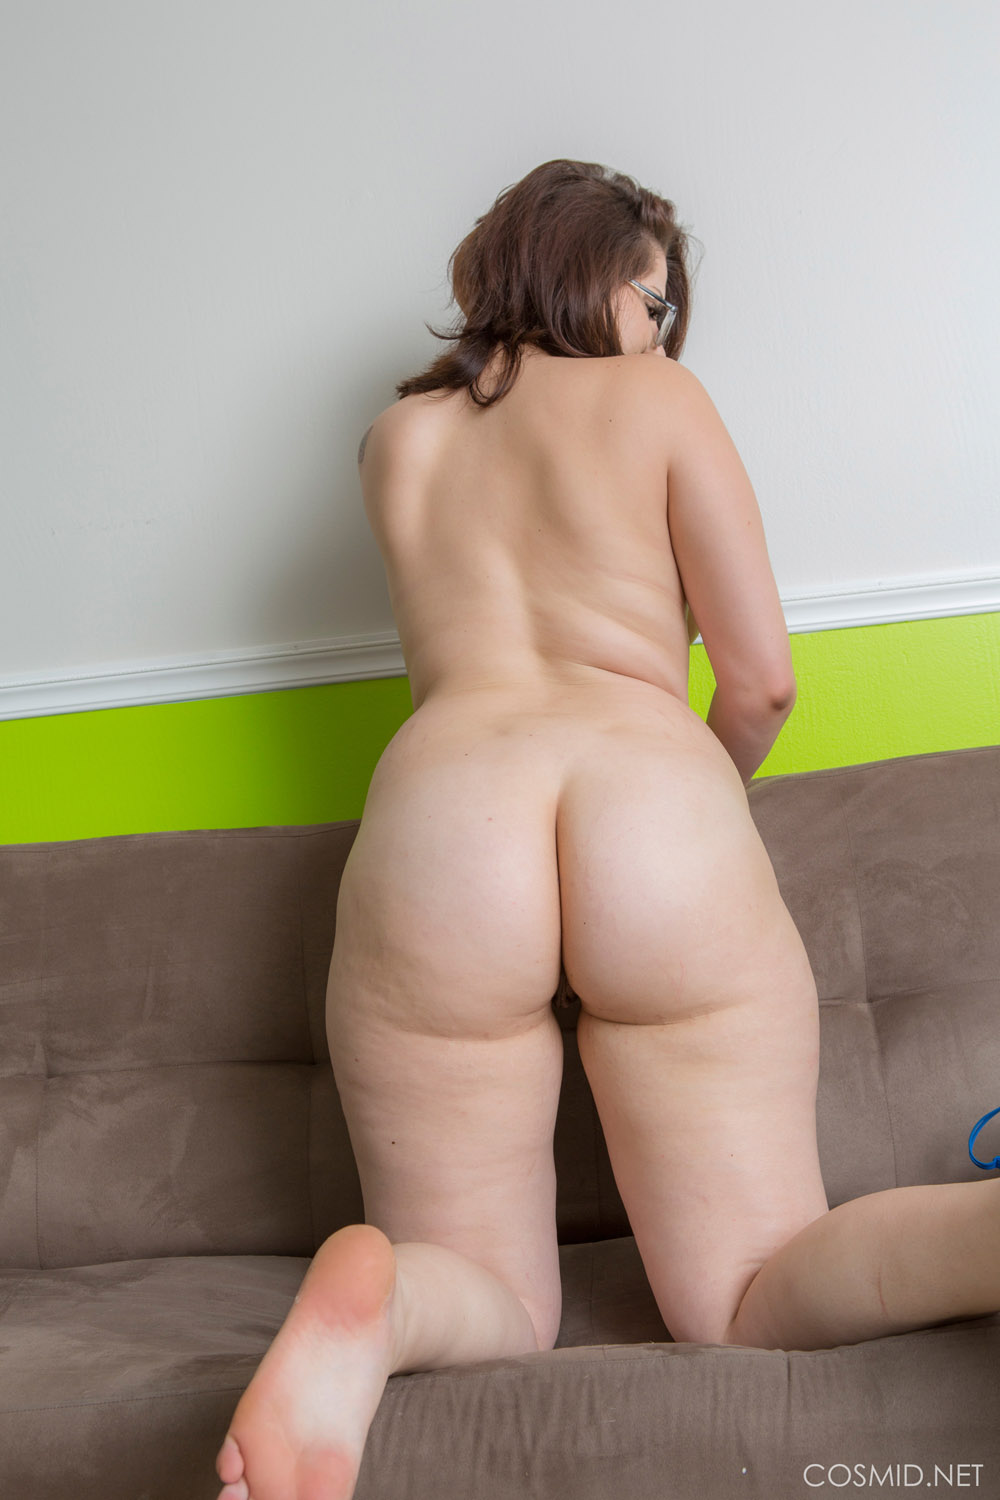 Chubby mature wife gets her first orgasm hitachi magic wand - 3 part 2